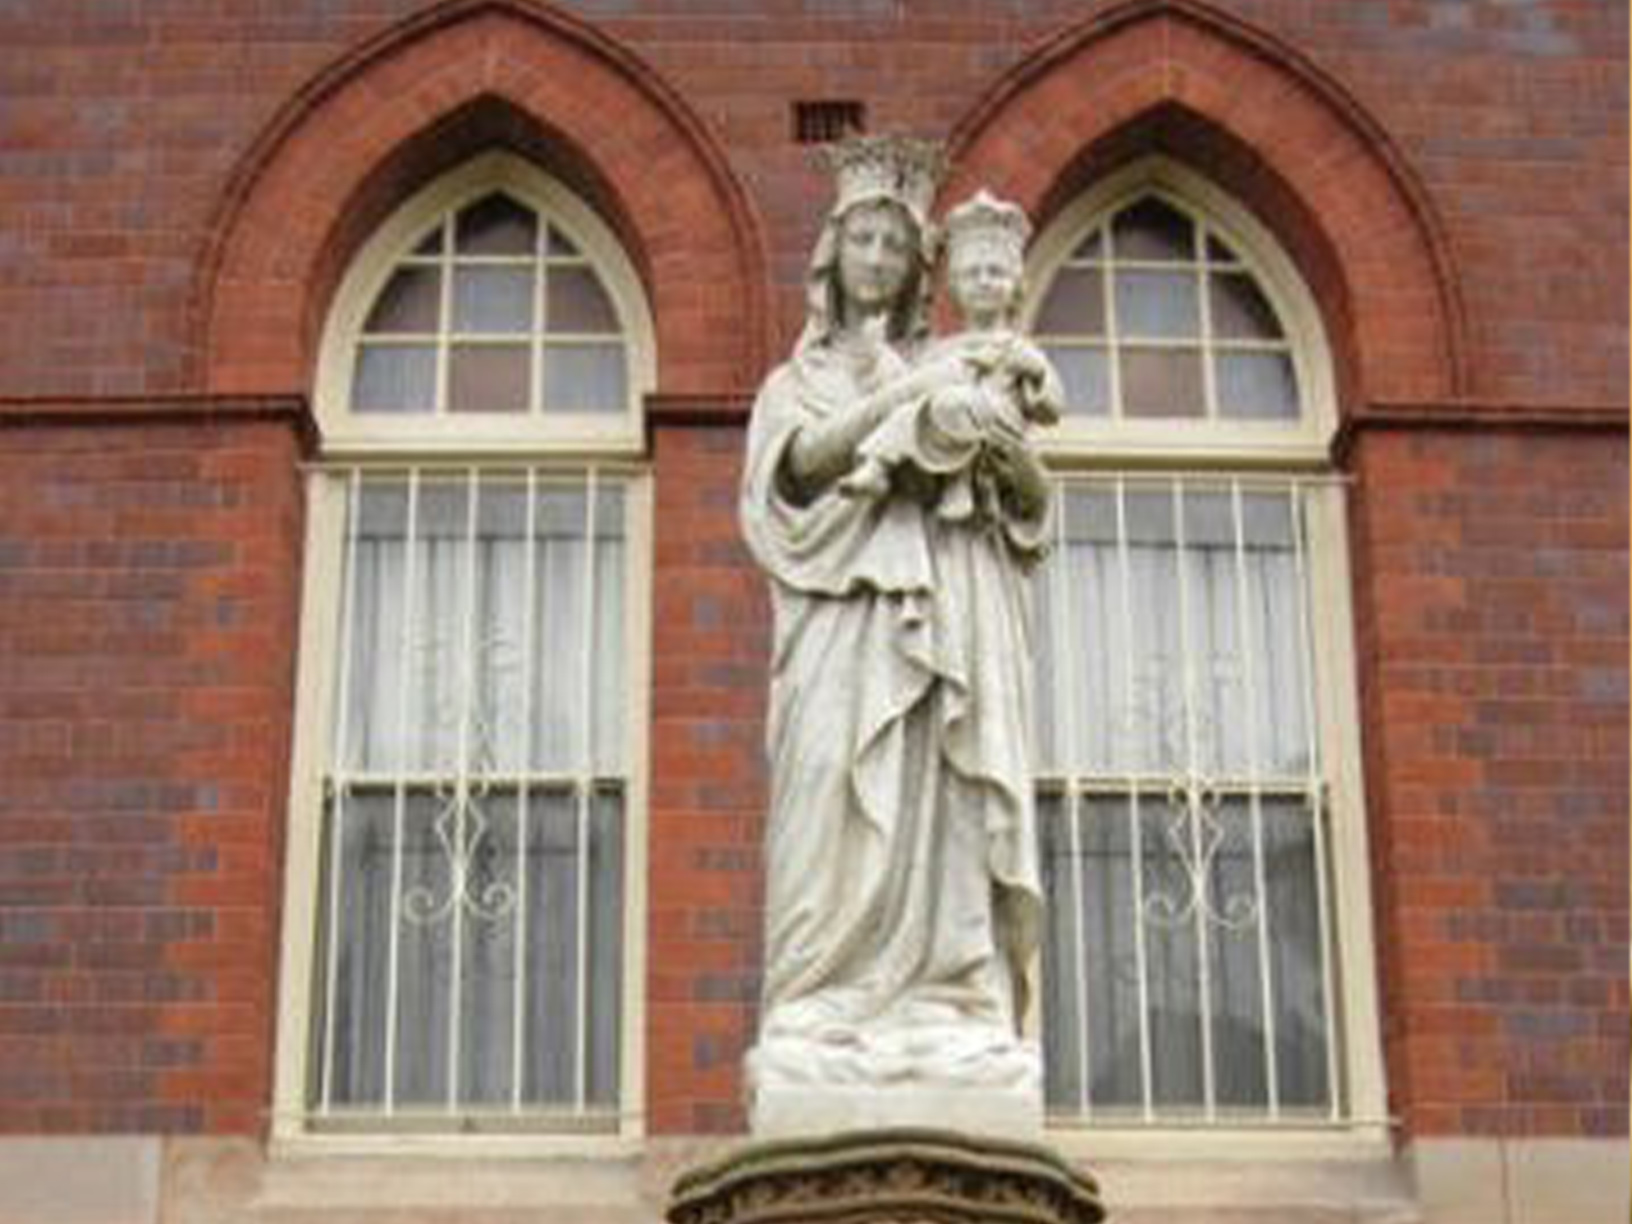 Statue in school grounds